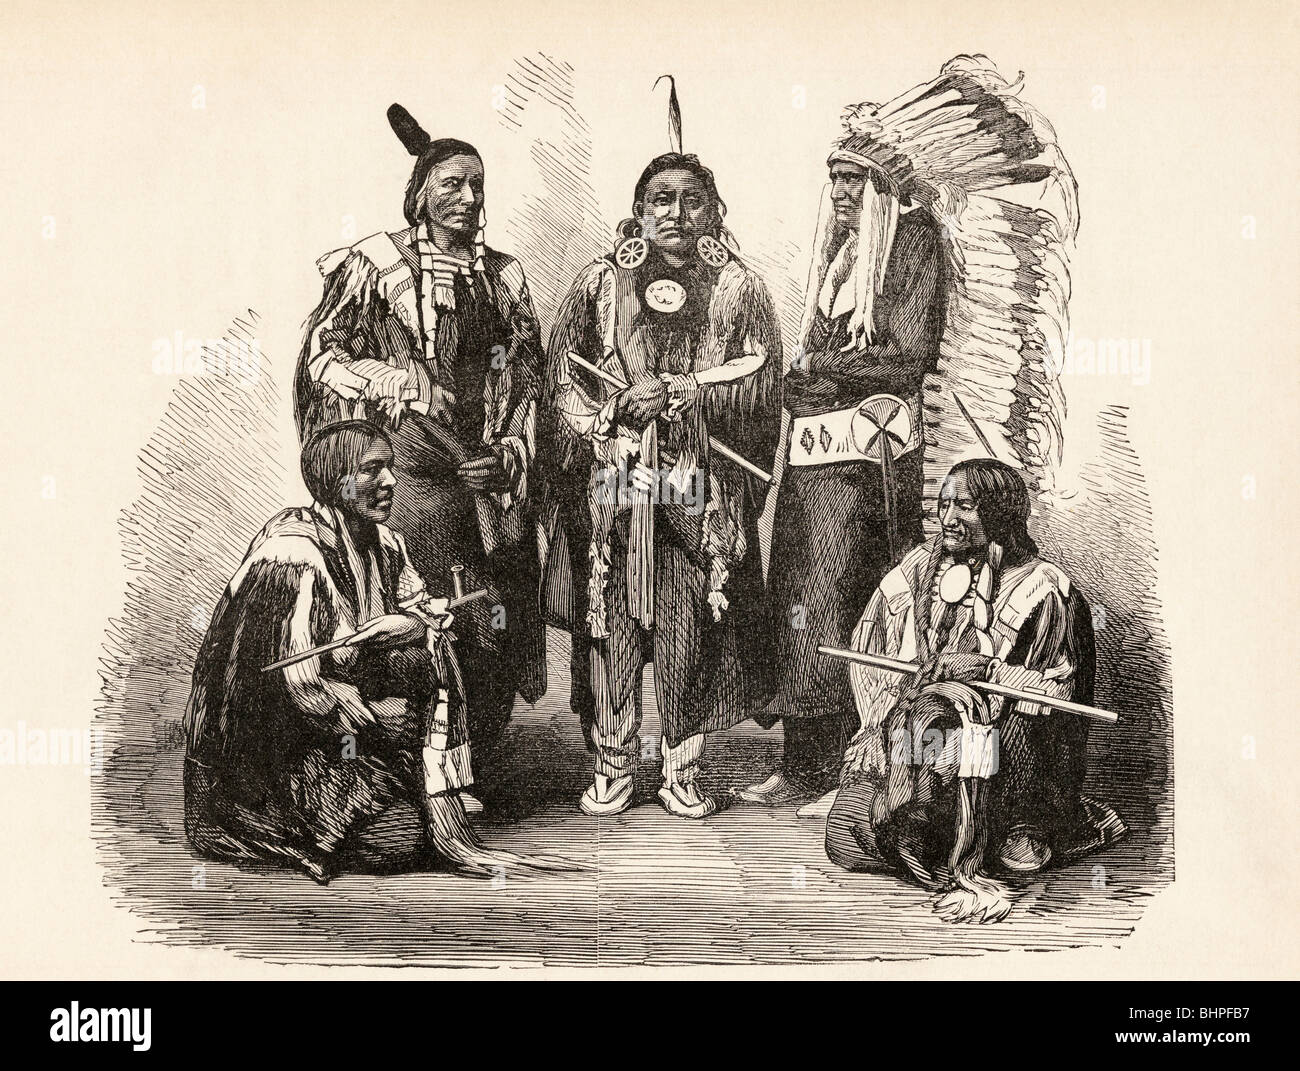 A Group of Sioux Indians. - Stock Image